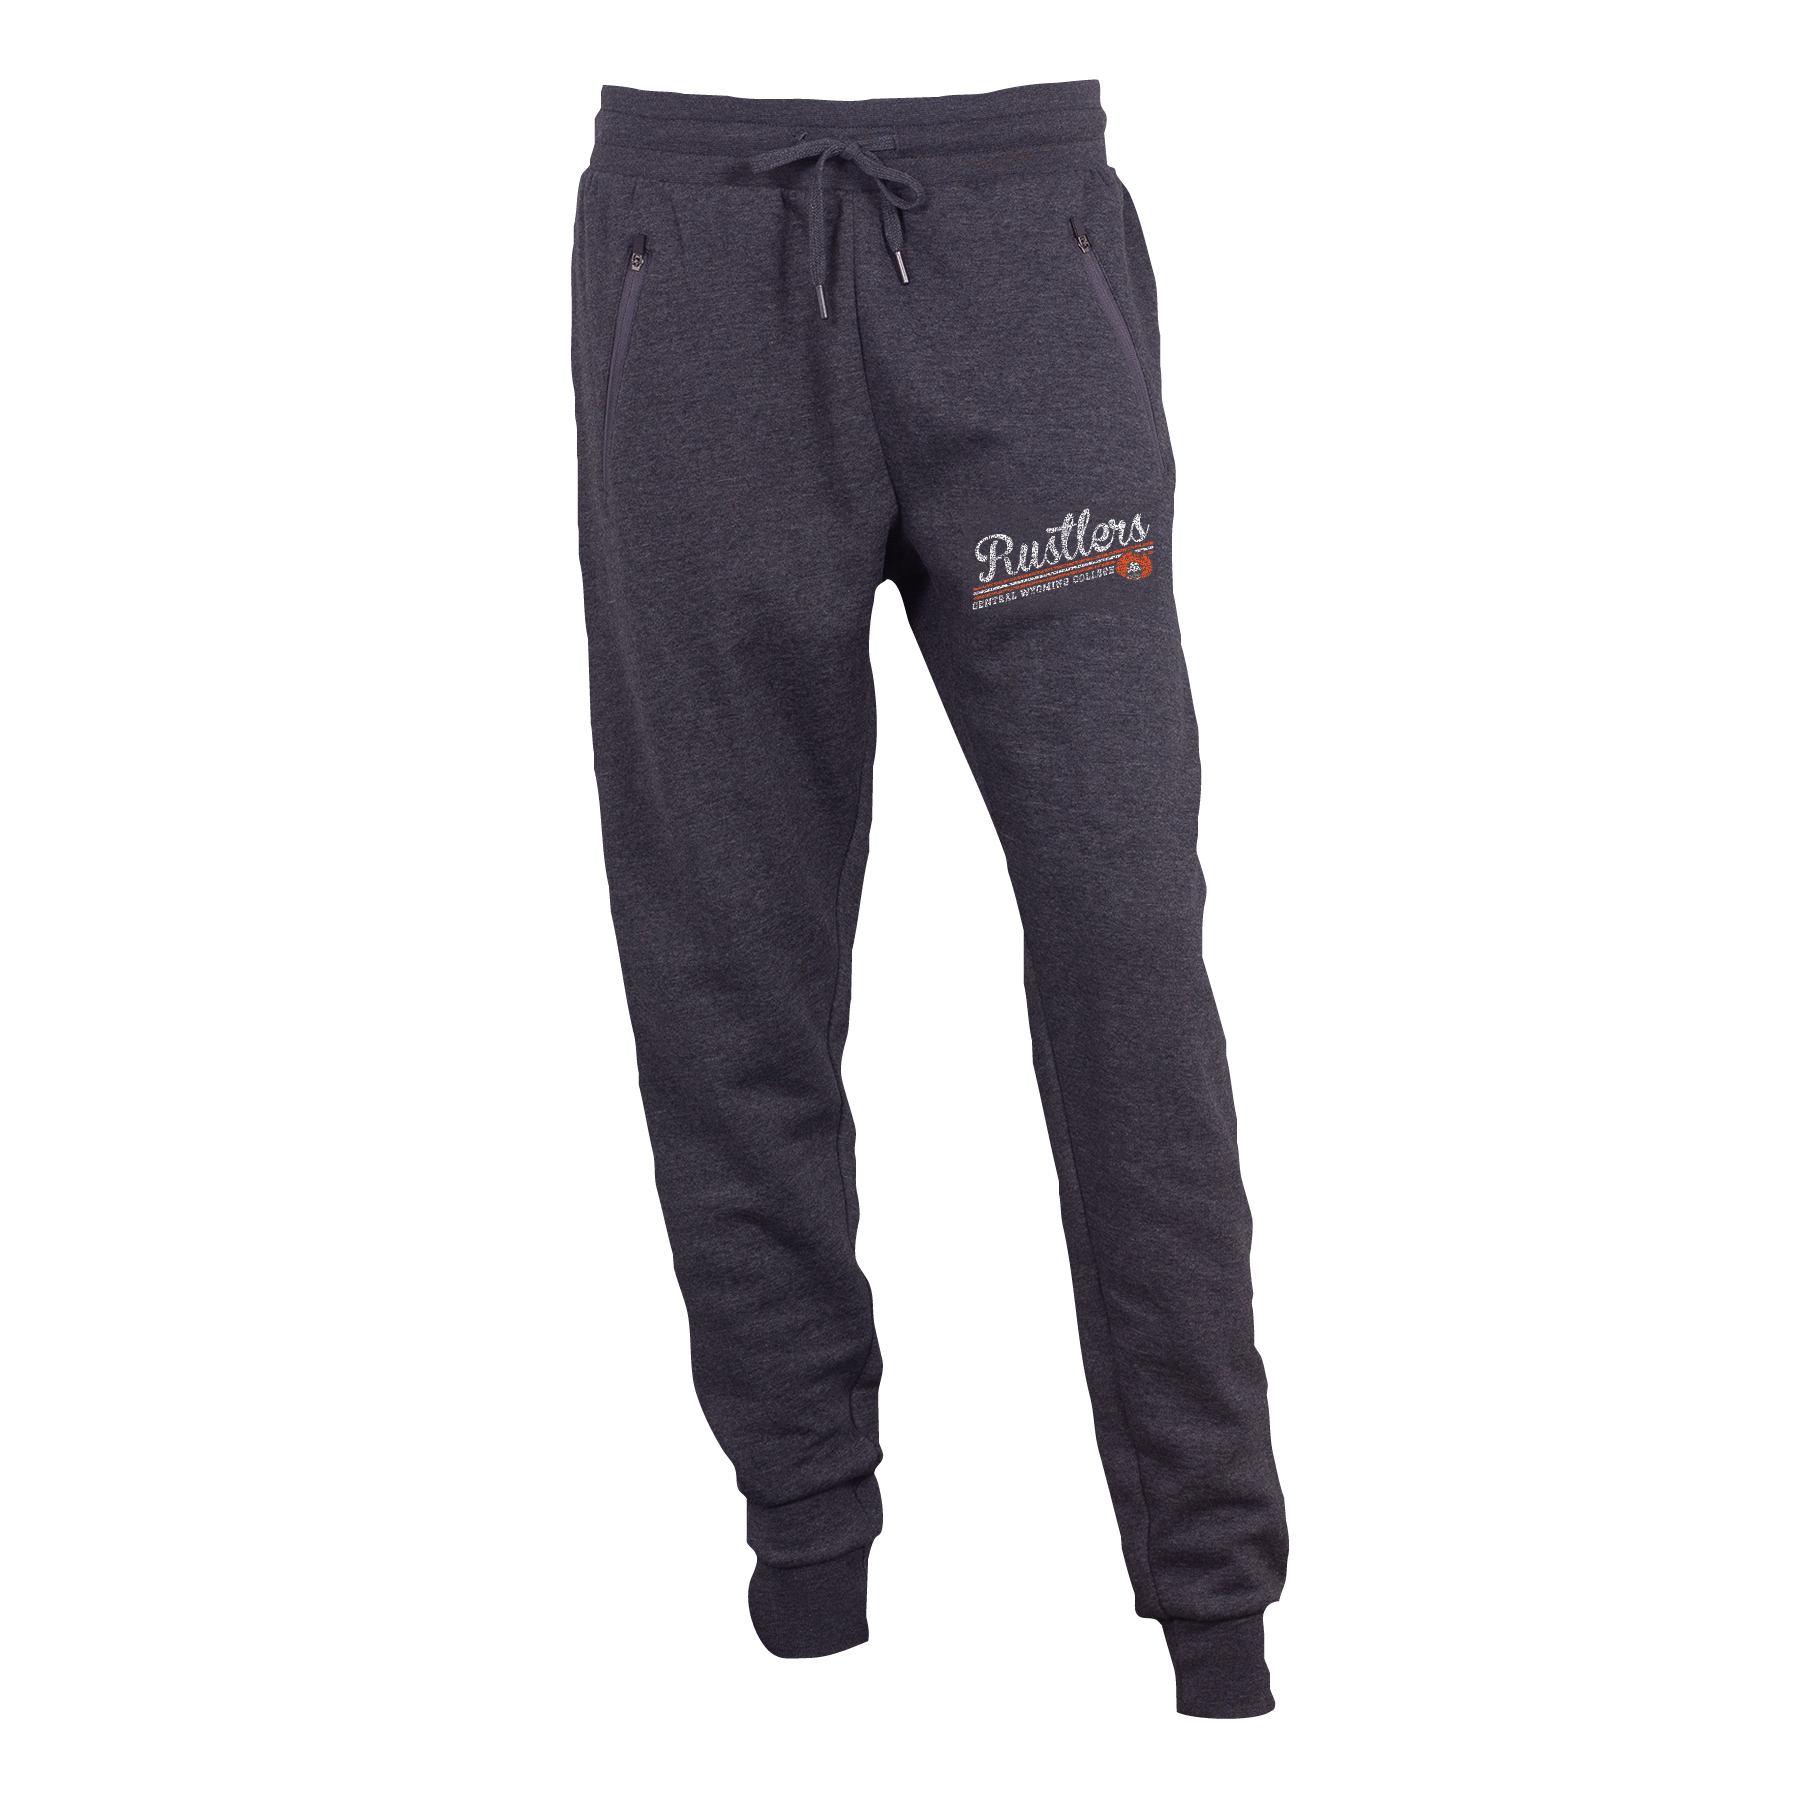 Ouray Women's Cozy Jogger